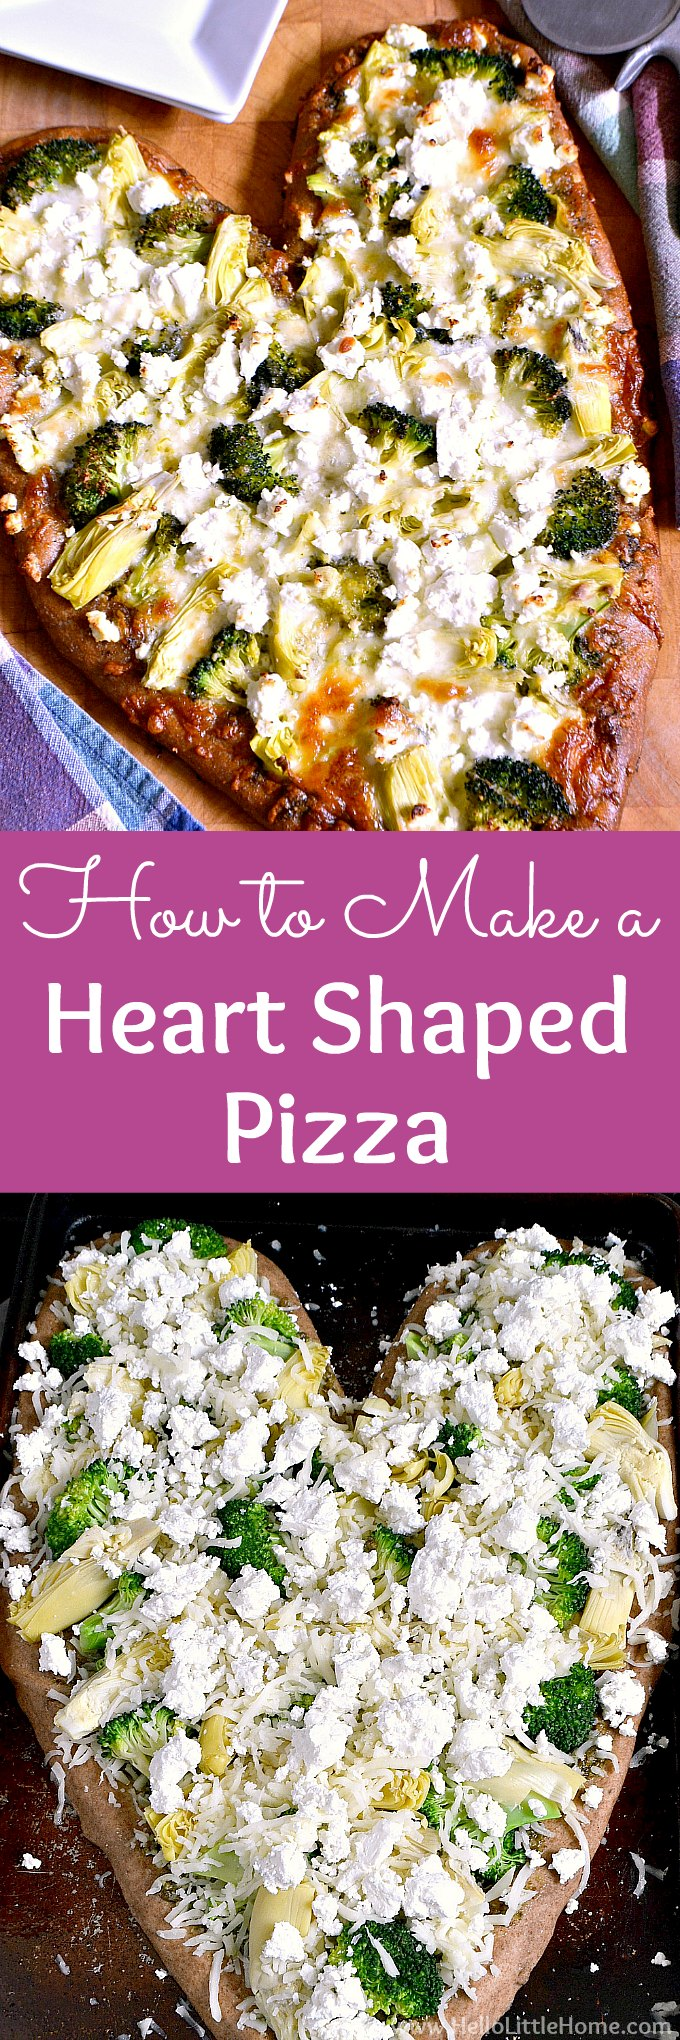 Learn how to make a Heart Shaped Pizza at home for Valentine's Day, date night, parties, or any special occasion! This homemade heart shaped pizza recipe is easy and fun to make for sweeties, kids, or families. Make one large pizza or smaller mini heart shaped pizzas with this creative and easy Valentine's Day dinner or lunch recipe. | Hello Little Home